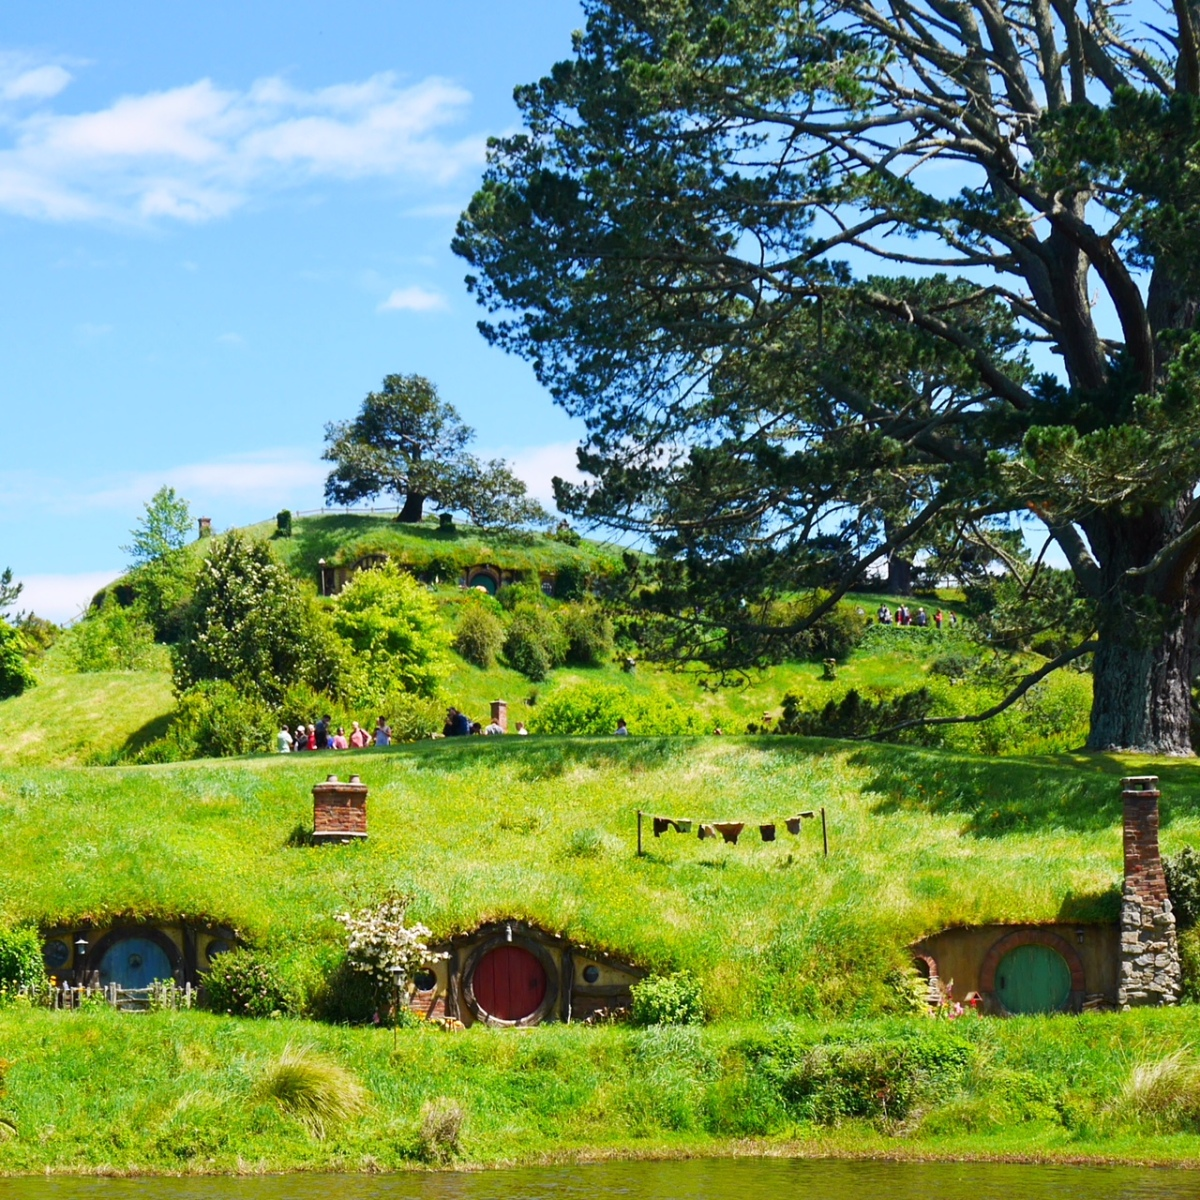 Wordless Wednesday: Hobbit Holes at Hobbiton